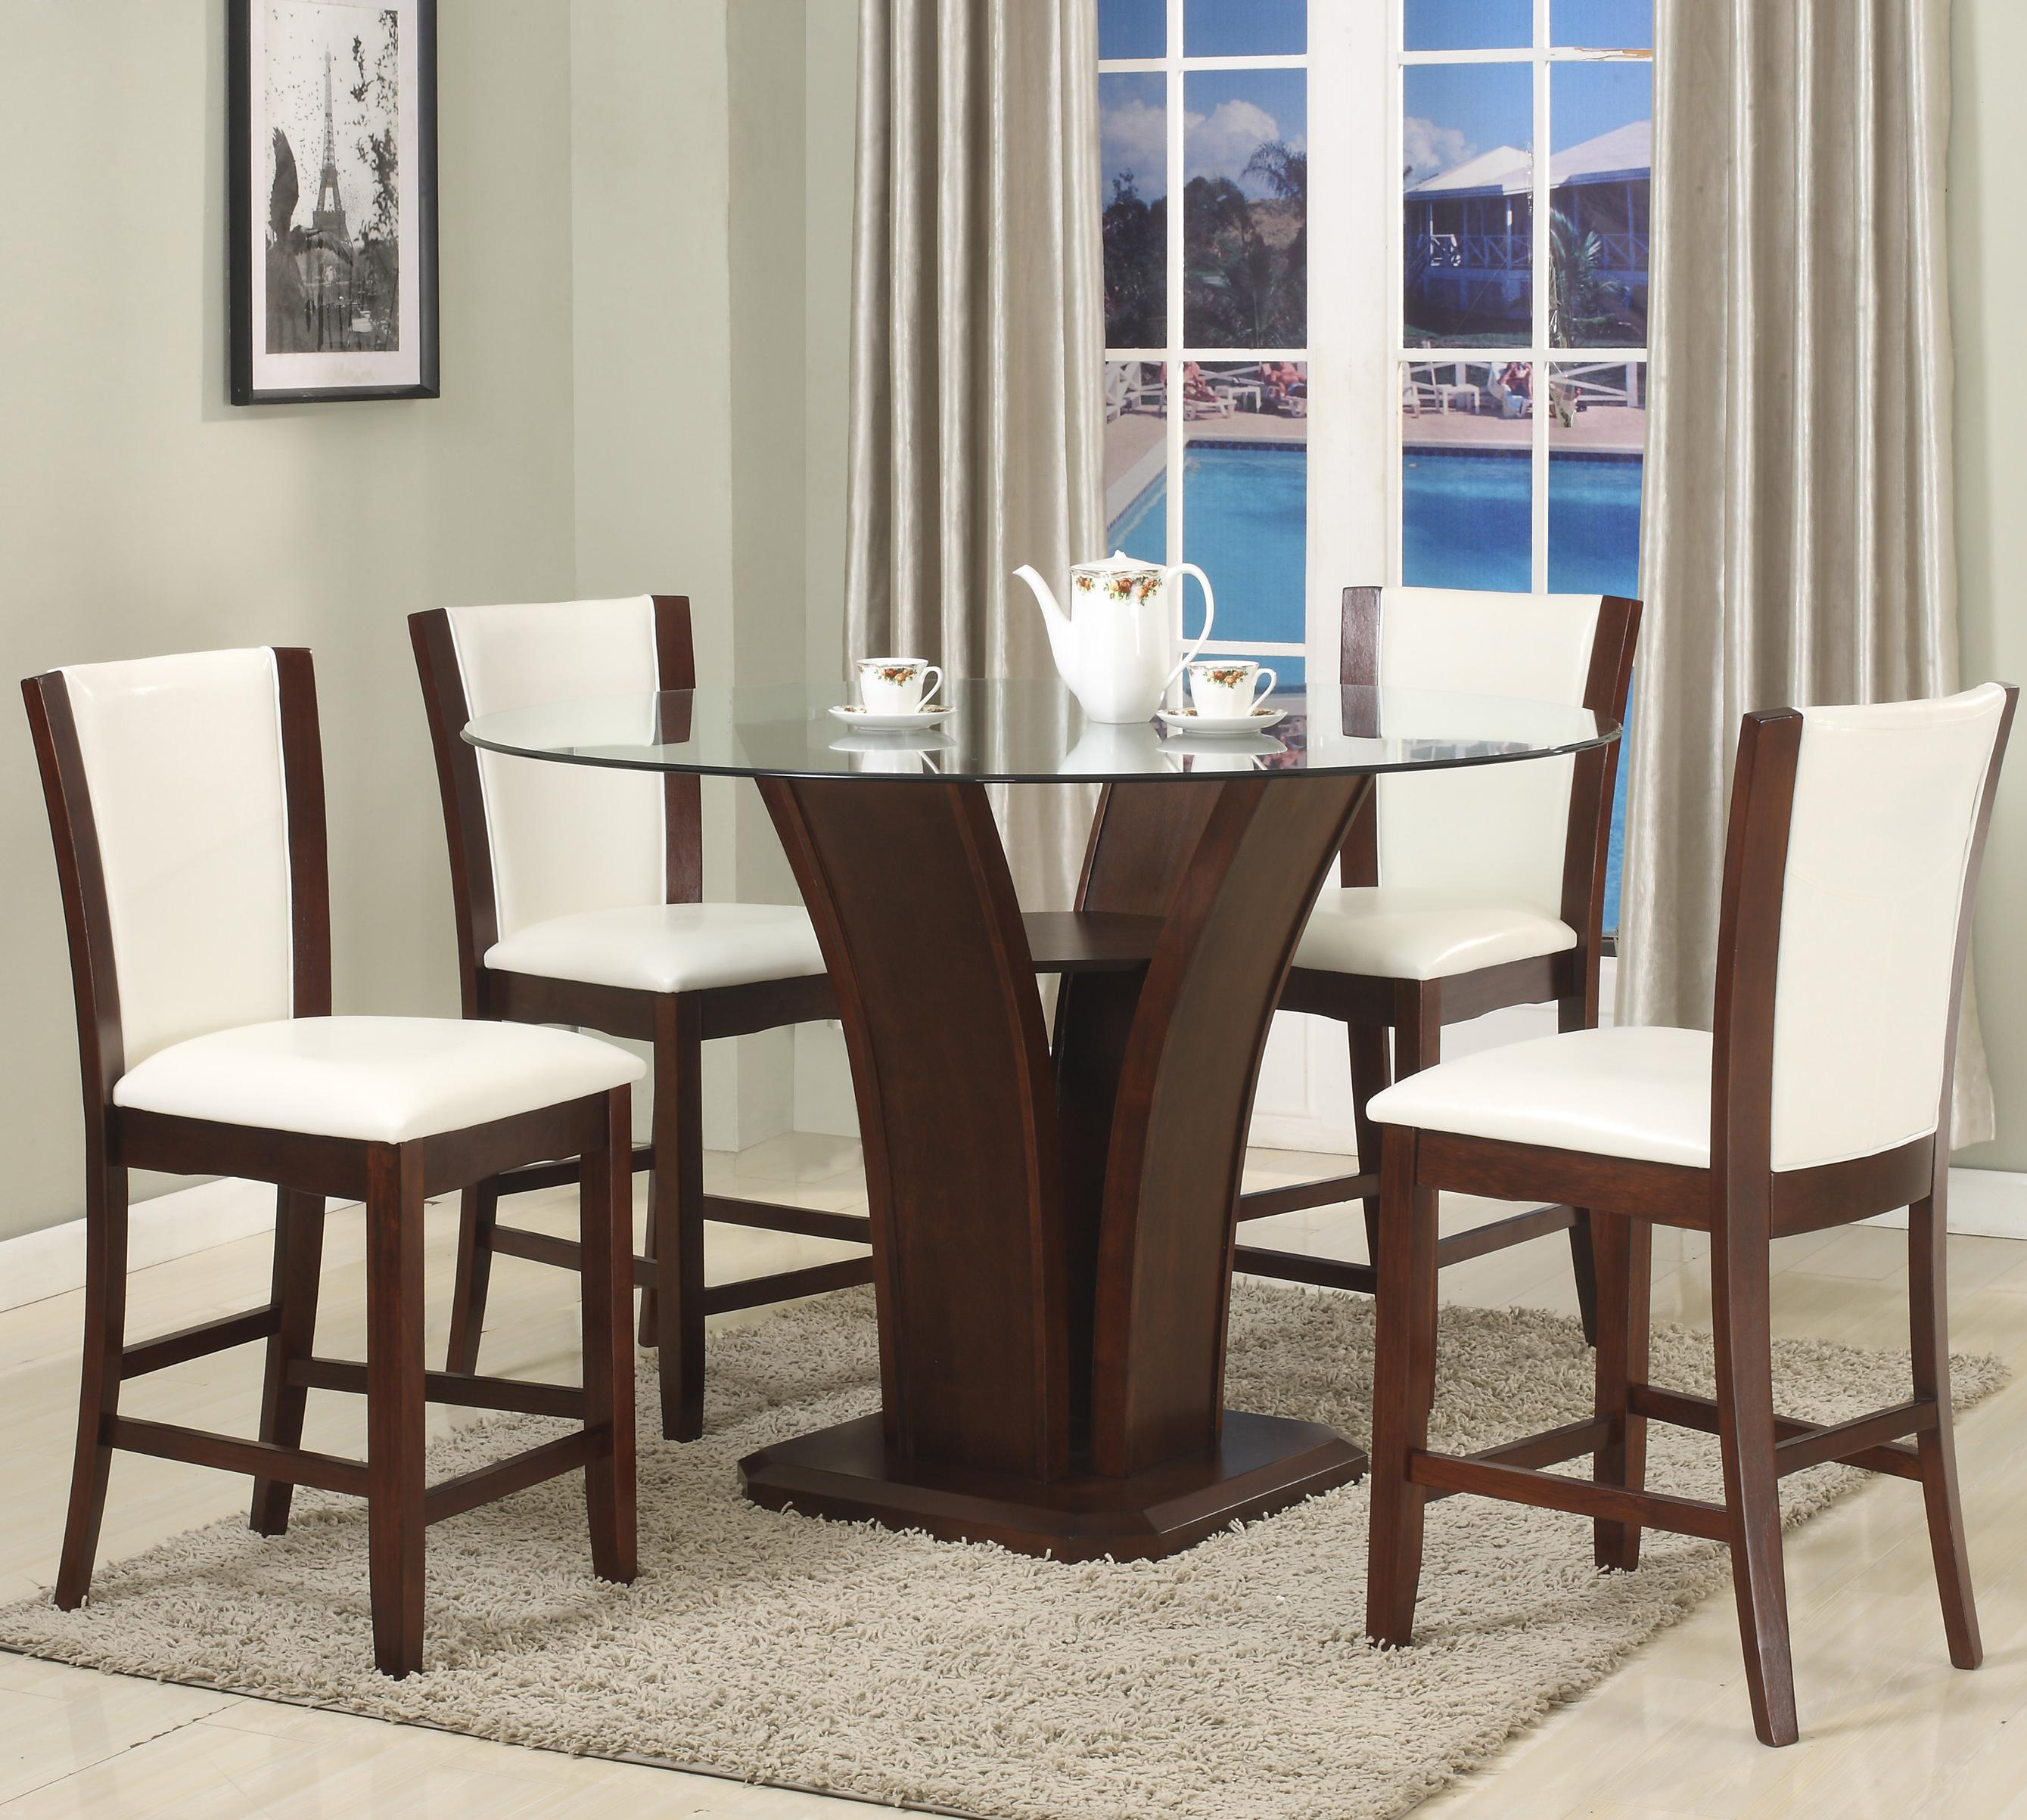 Camelia White 5 Piece Counter Height Table Set by Crown Mark at Northeast Factory Direct